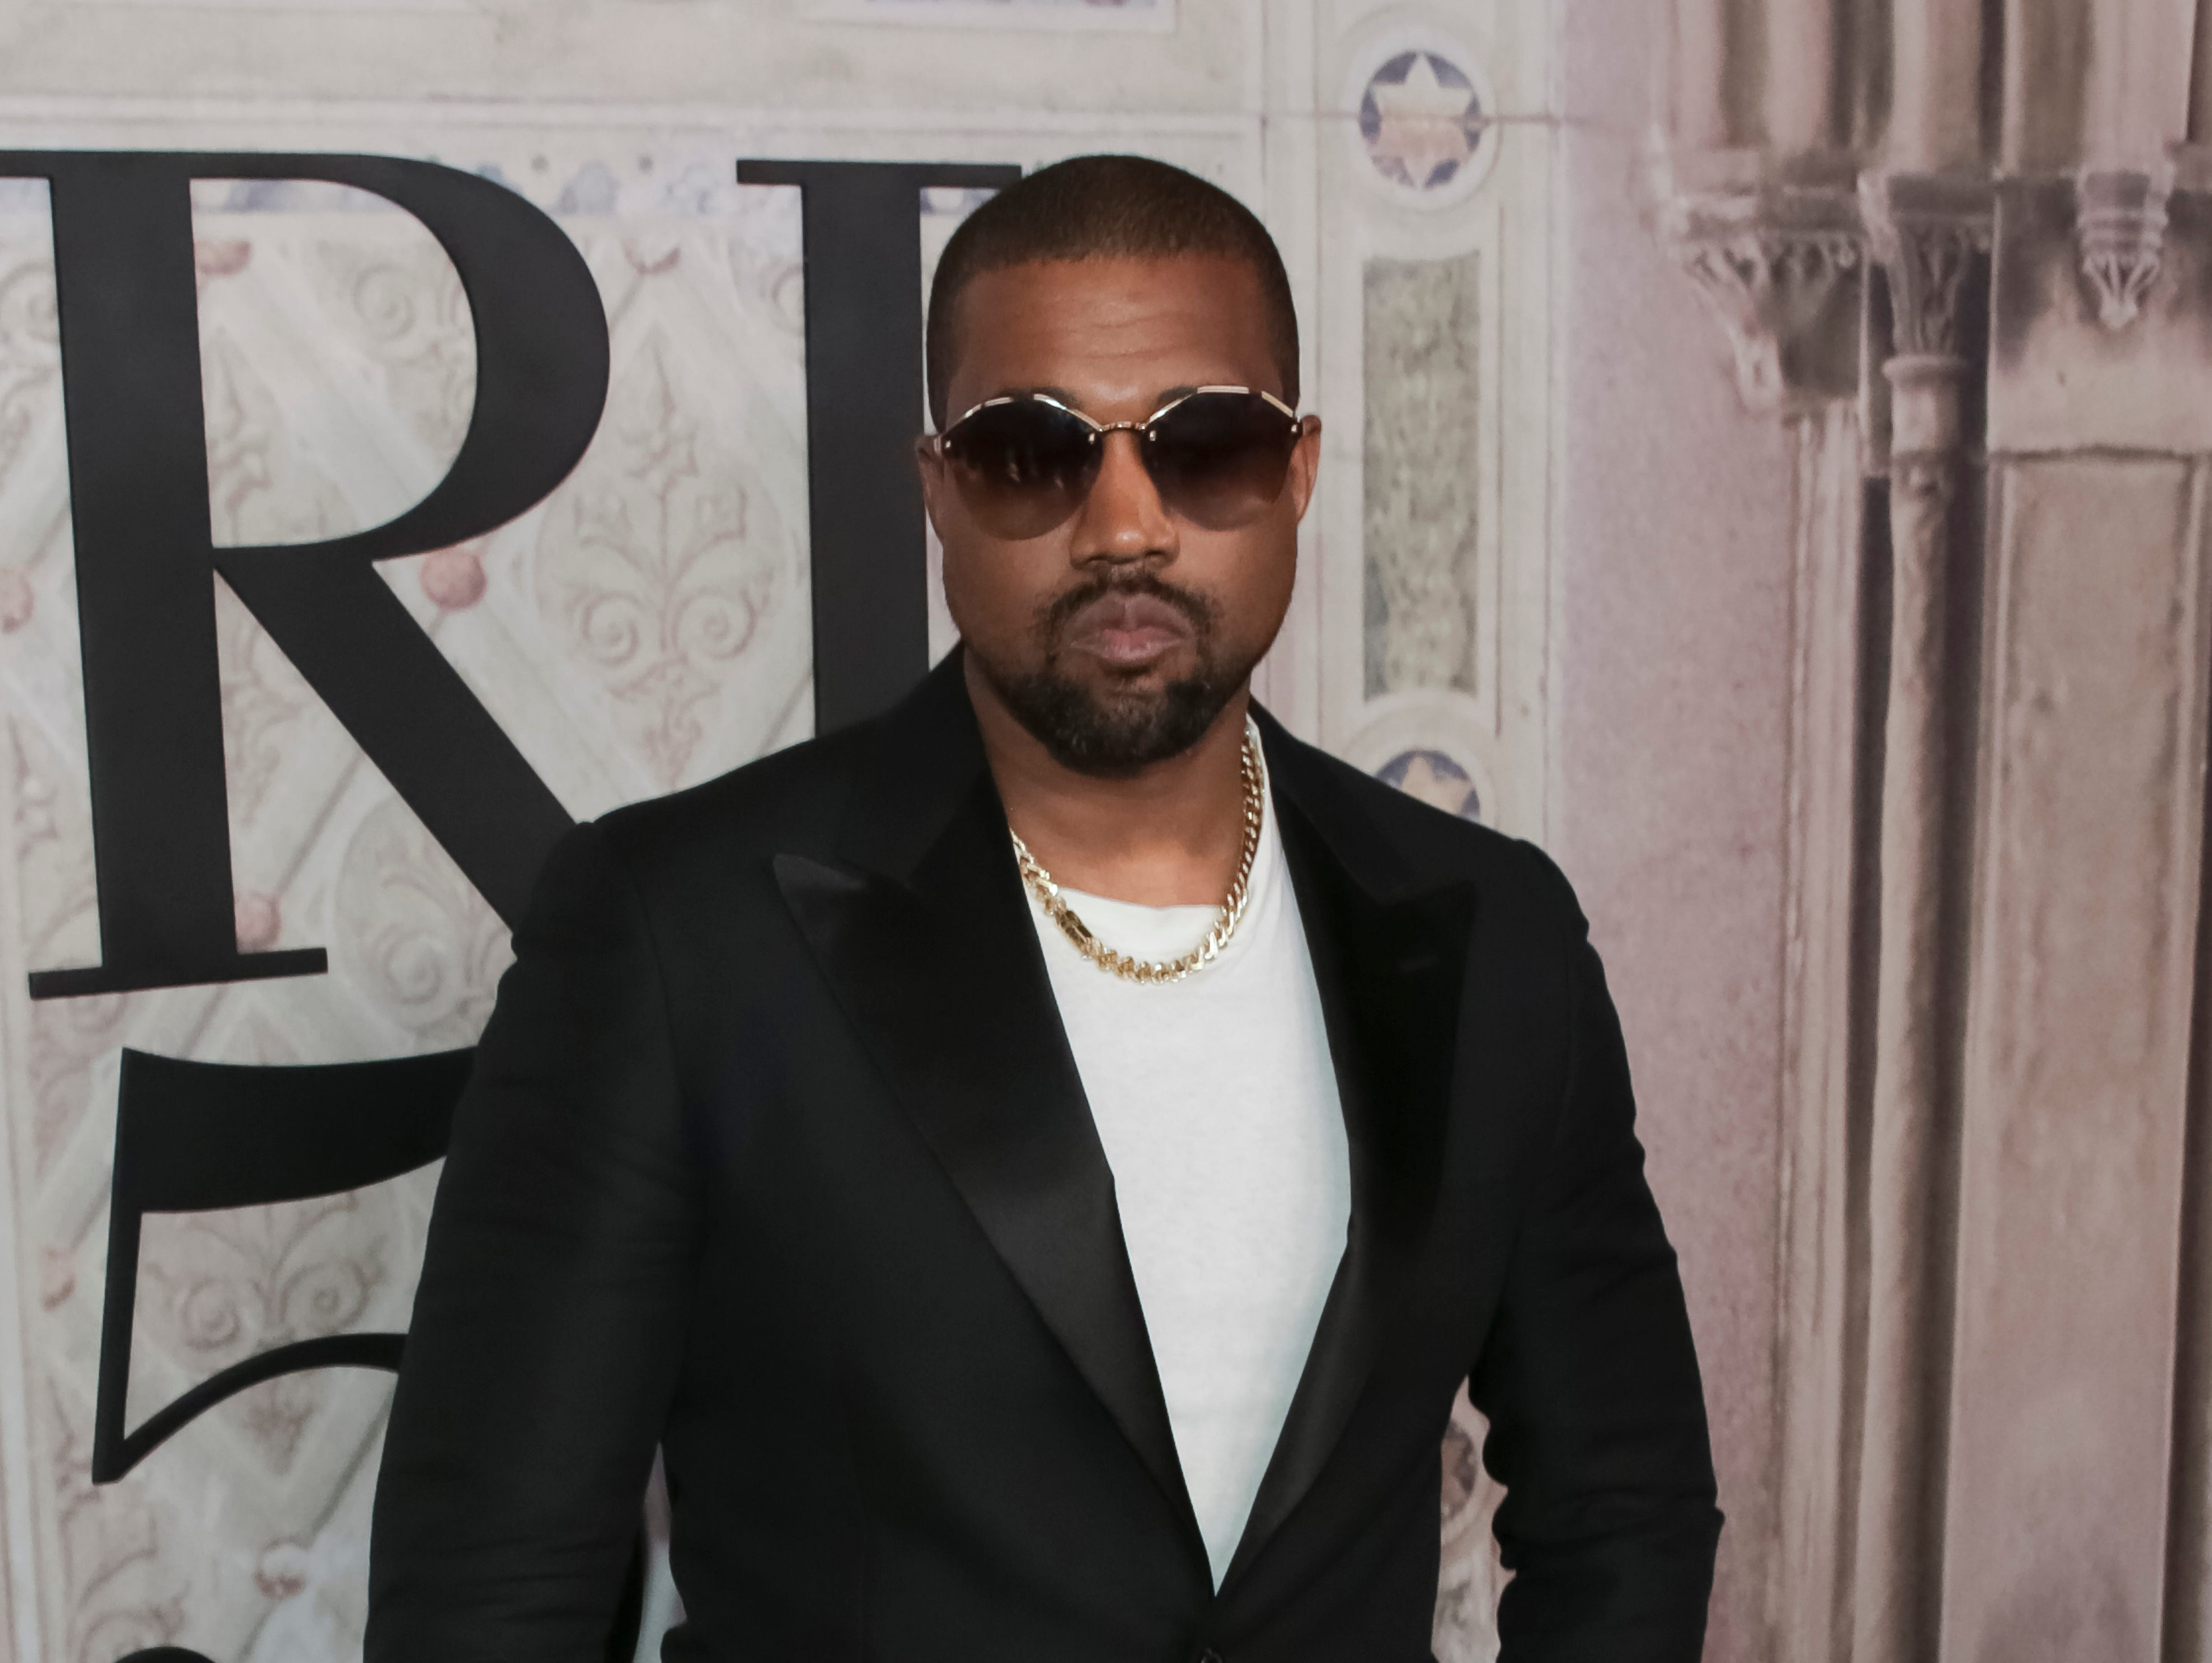 FILE - In this Sept. 7, 2018, file photo, Kanye West attends the Ralph Lauren 50th Anniversary Event held at Bethesda Terrace in Central Park during New York Fashion Week in New York.  West appeared to reignite a feud with the fellow rapper in a series of tweets on Thursday, Dec. 13, 2018,  in which he claimed Drake had called trying to threaten him.   (Photo by Brent N. Clarke/Invision/AP, File) ORG XMIT: NY107